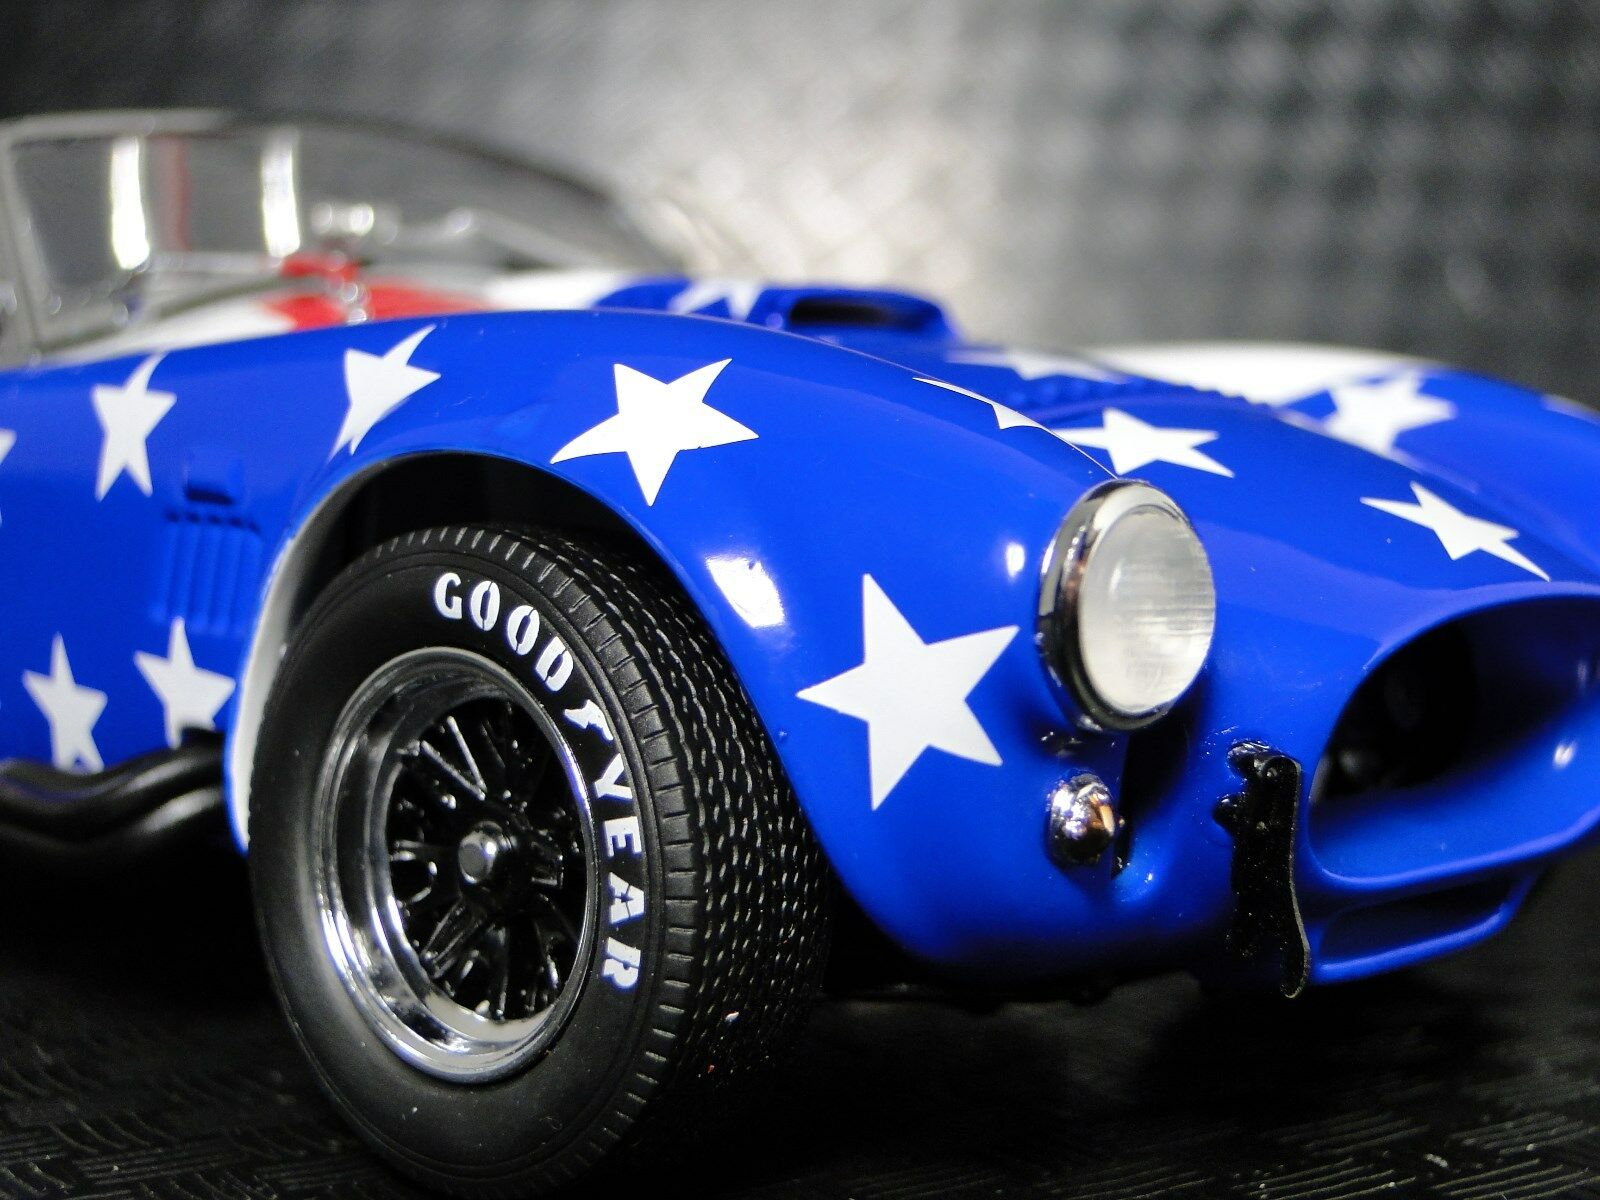 A 1966 Ford Cobra Shelby Race Car 1 1 1 24 Sport 40 GT 12 Vintage 18 T 43 Model 64 68312c